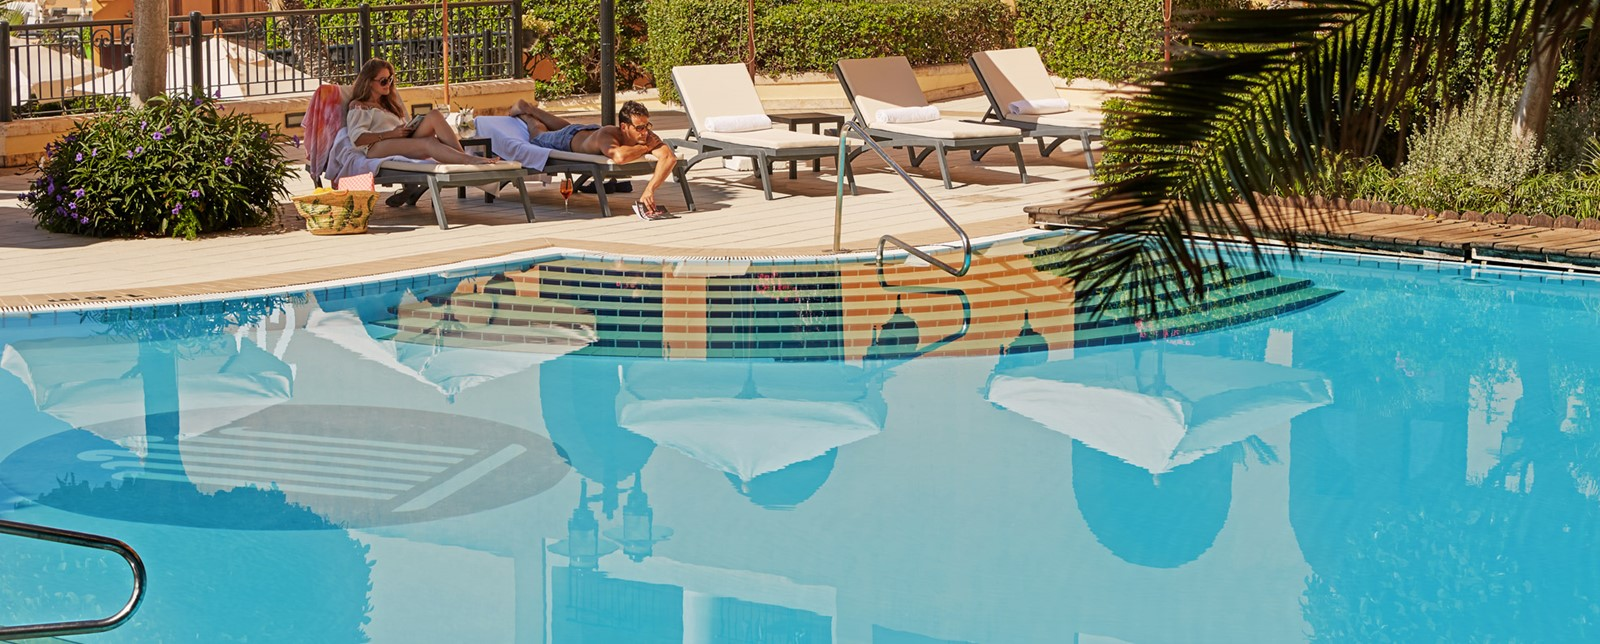 Corinthia St George's Bay Pool loungers